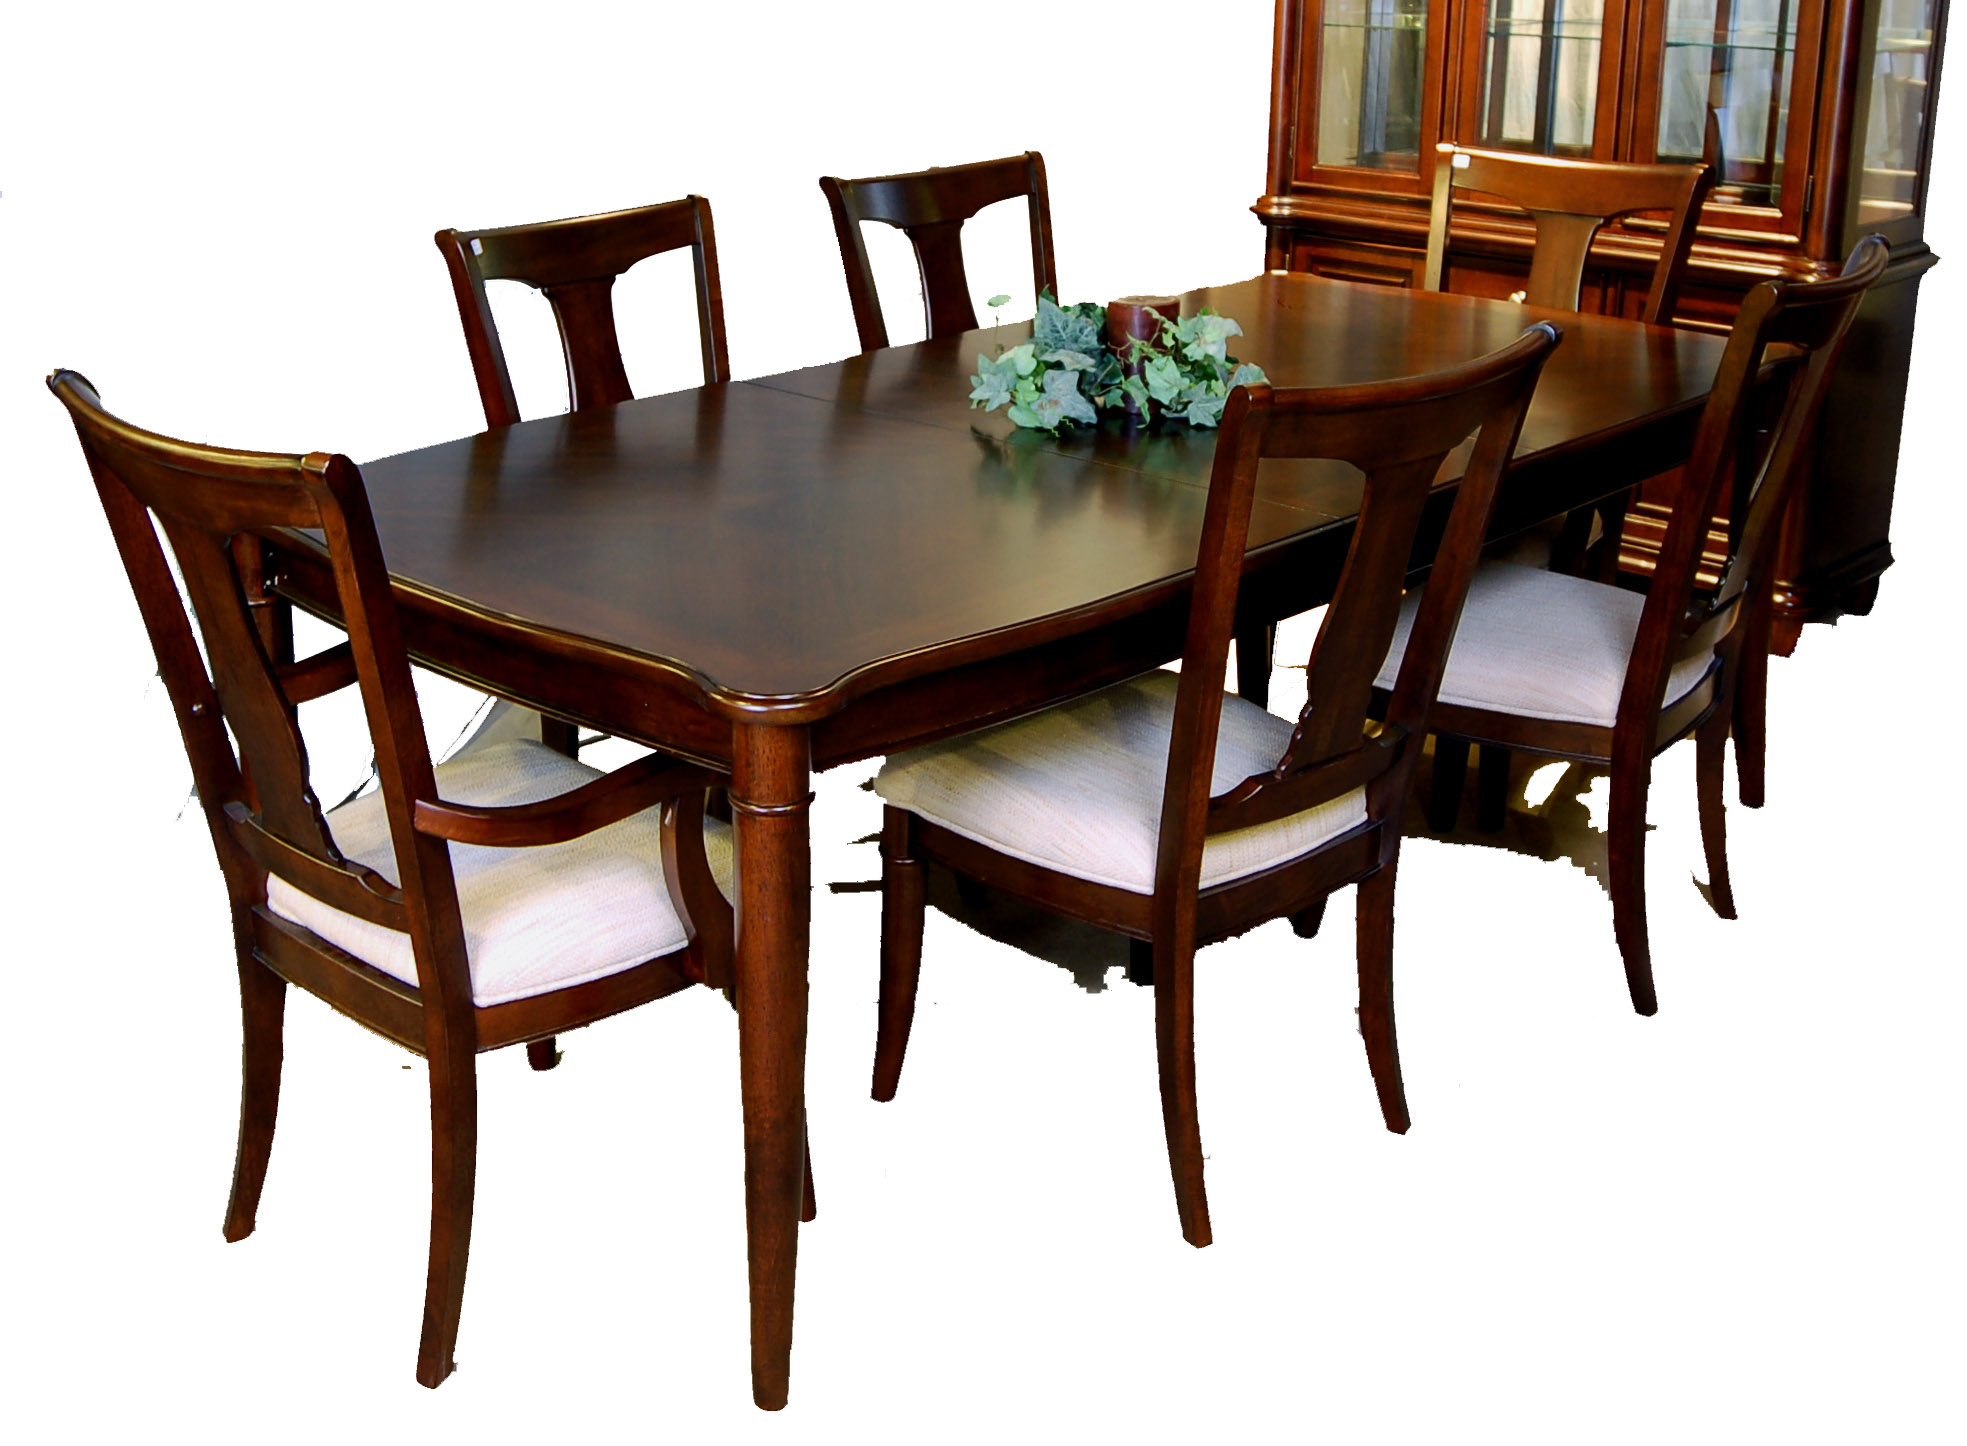 7 piece dining room table and chair set ebay for 7 piece dining set with bench